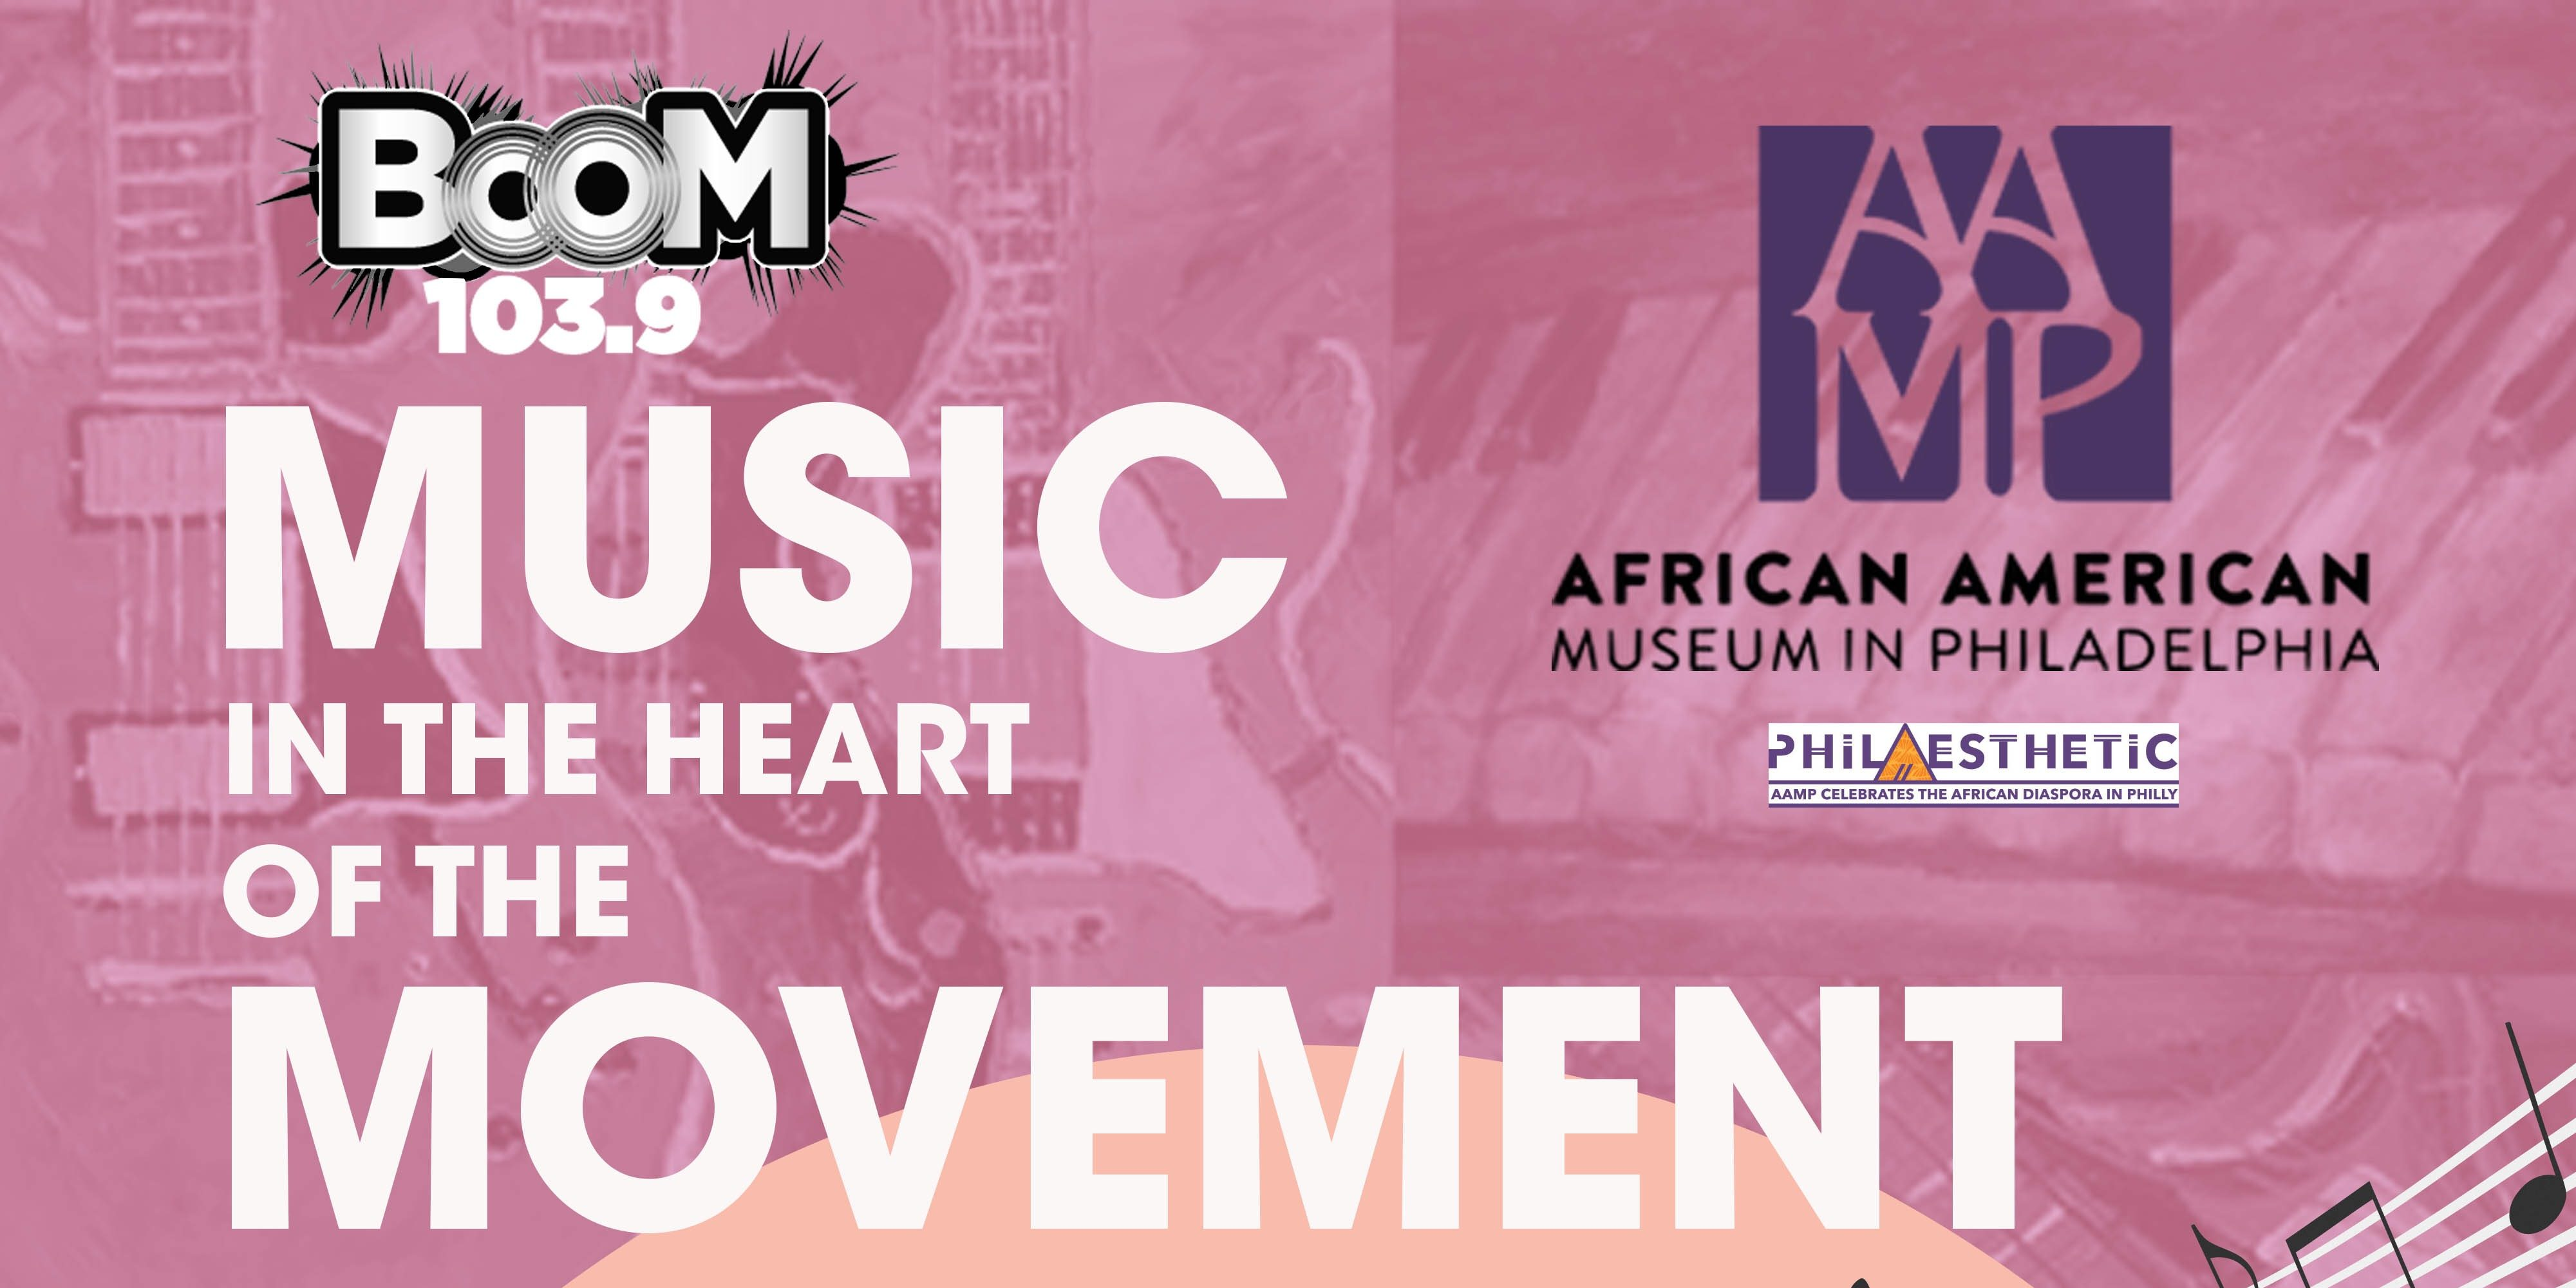 Music in the movement